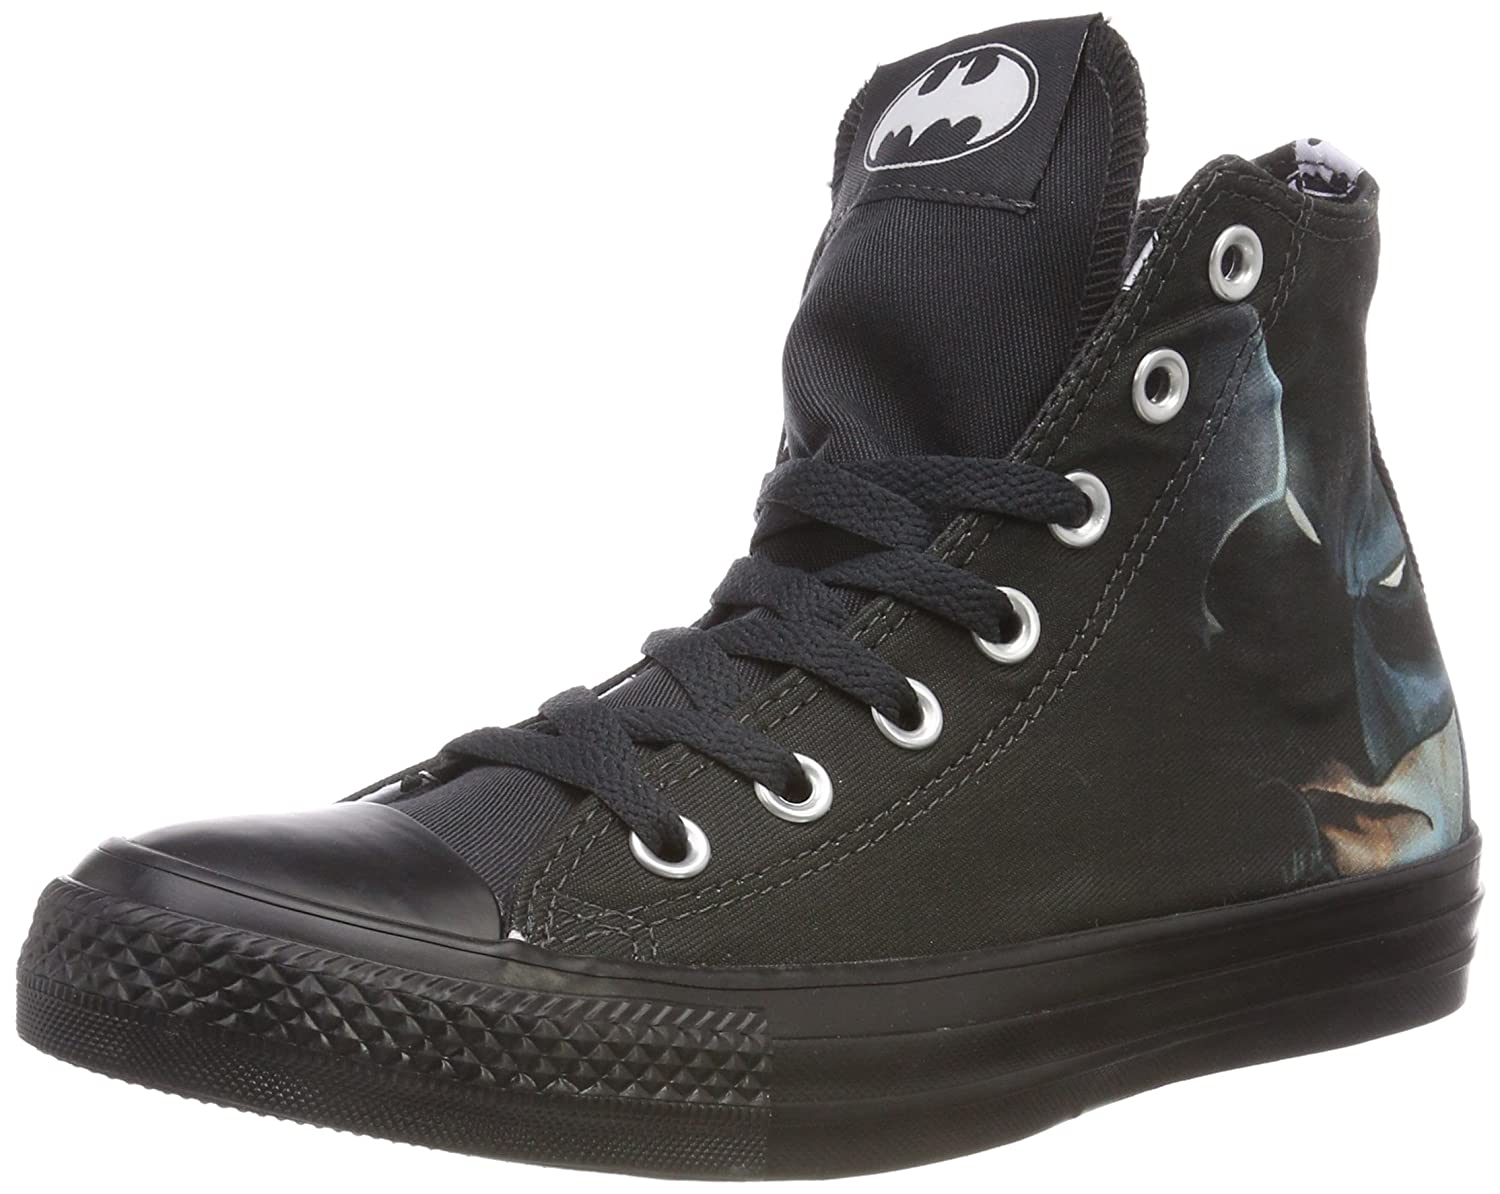 Converse DC Comics Chuck Taylor All Star Sneakers B078W27HWD Mens 12/Womens 14|Batman Black/White/Black 001 9533